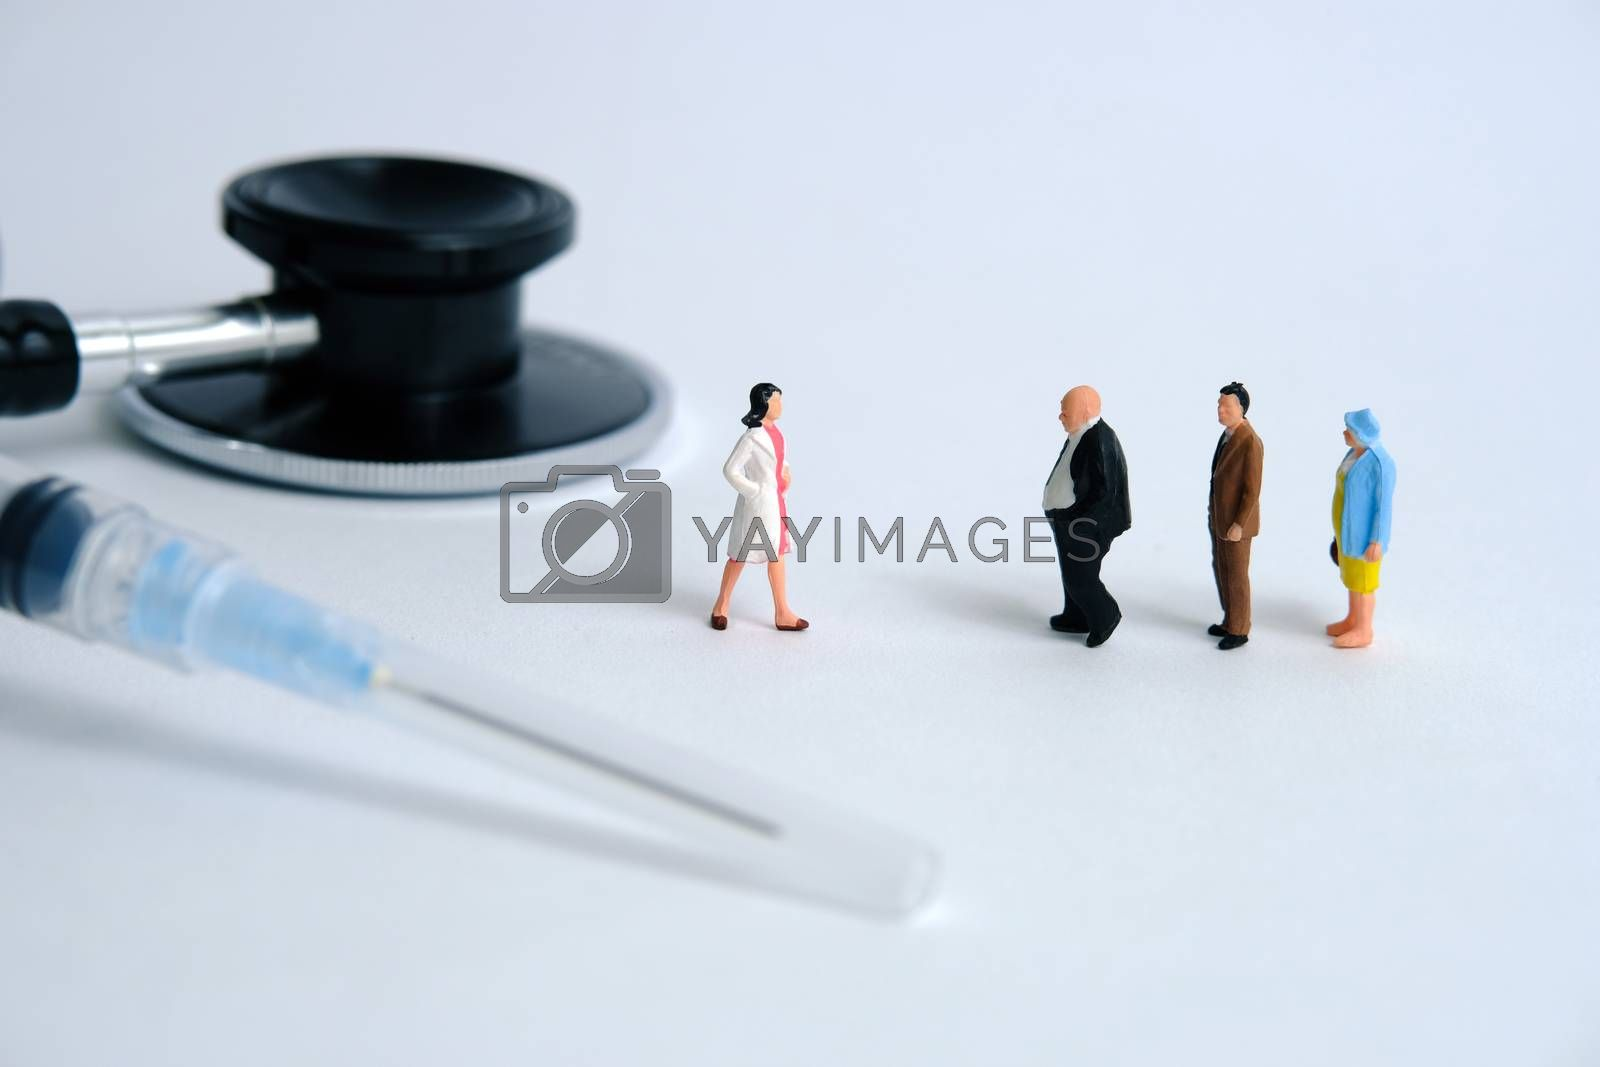 Pandemic coronavirus conceptual miniature people photography – a group of people line up in line for a health check. Image Photo